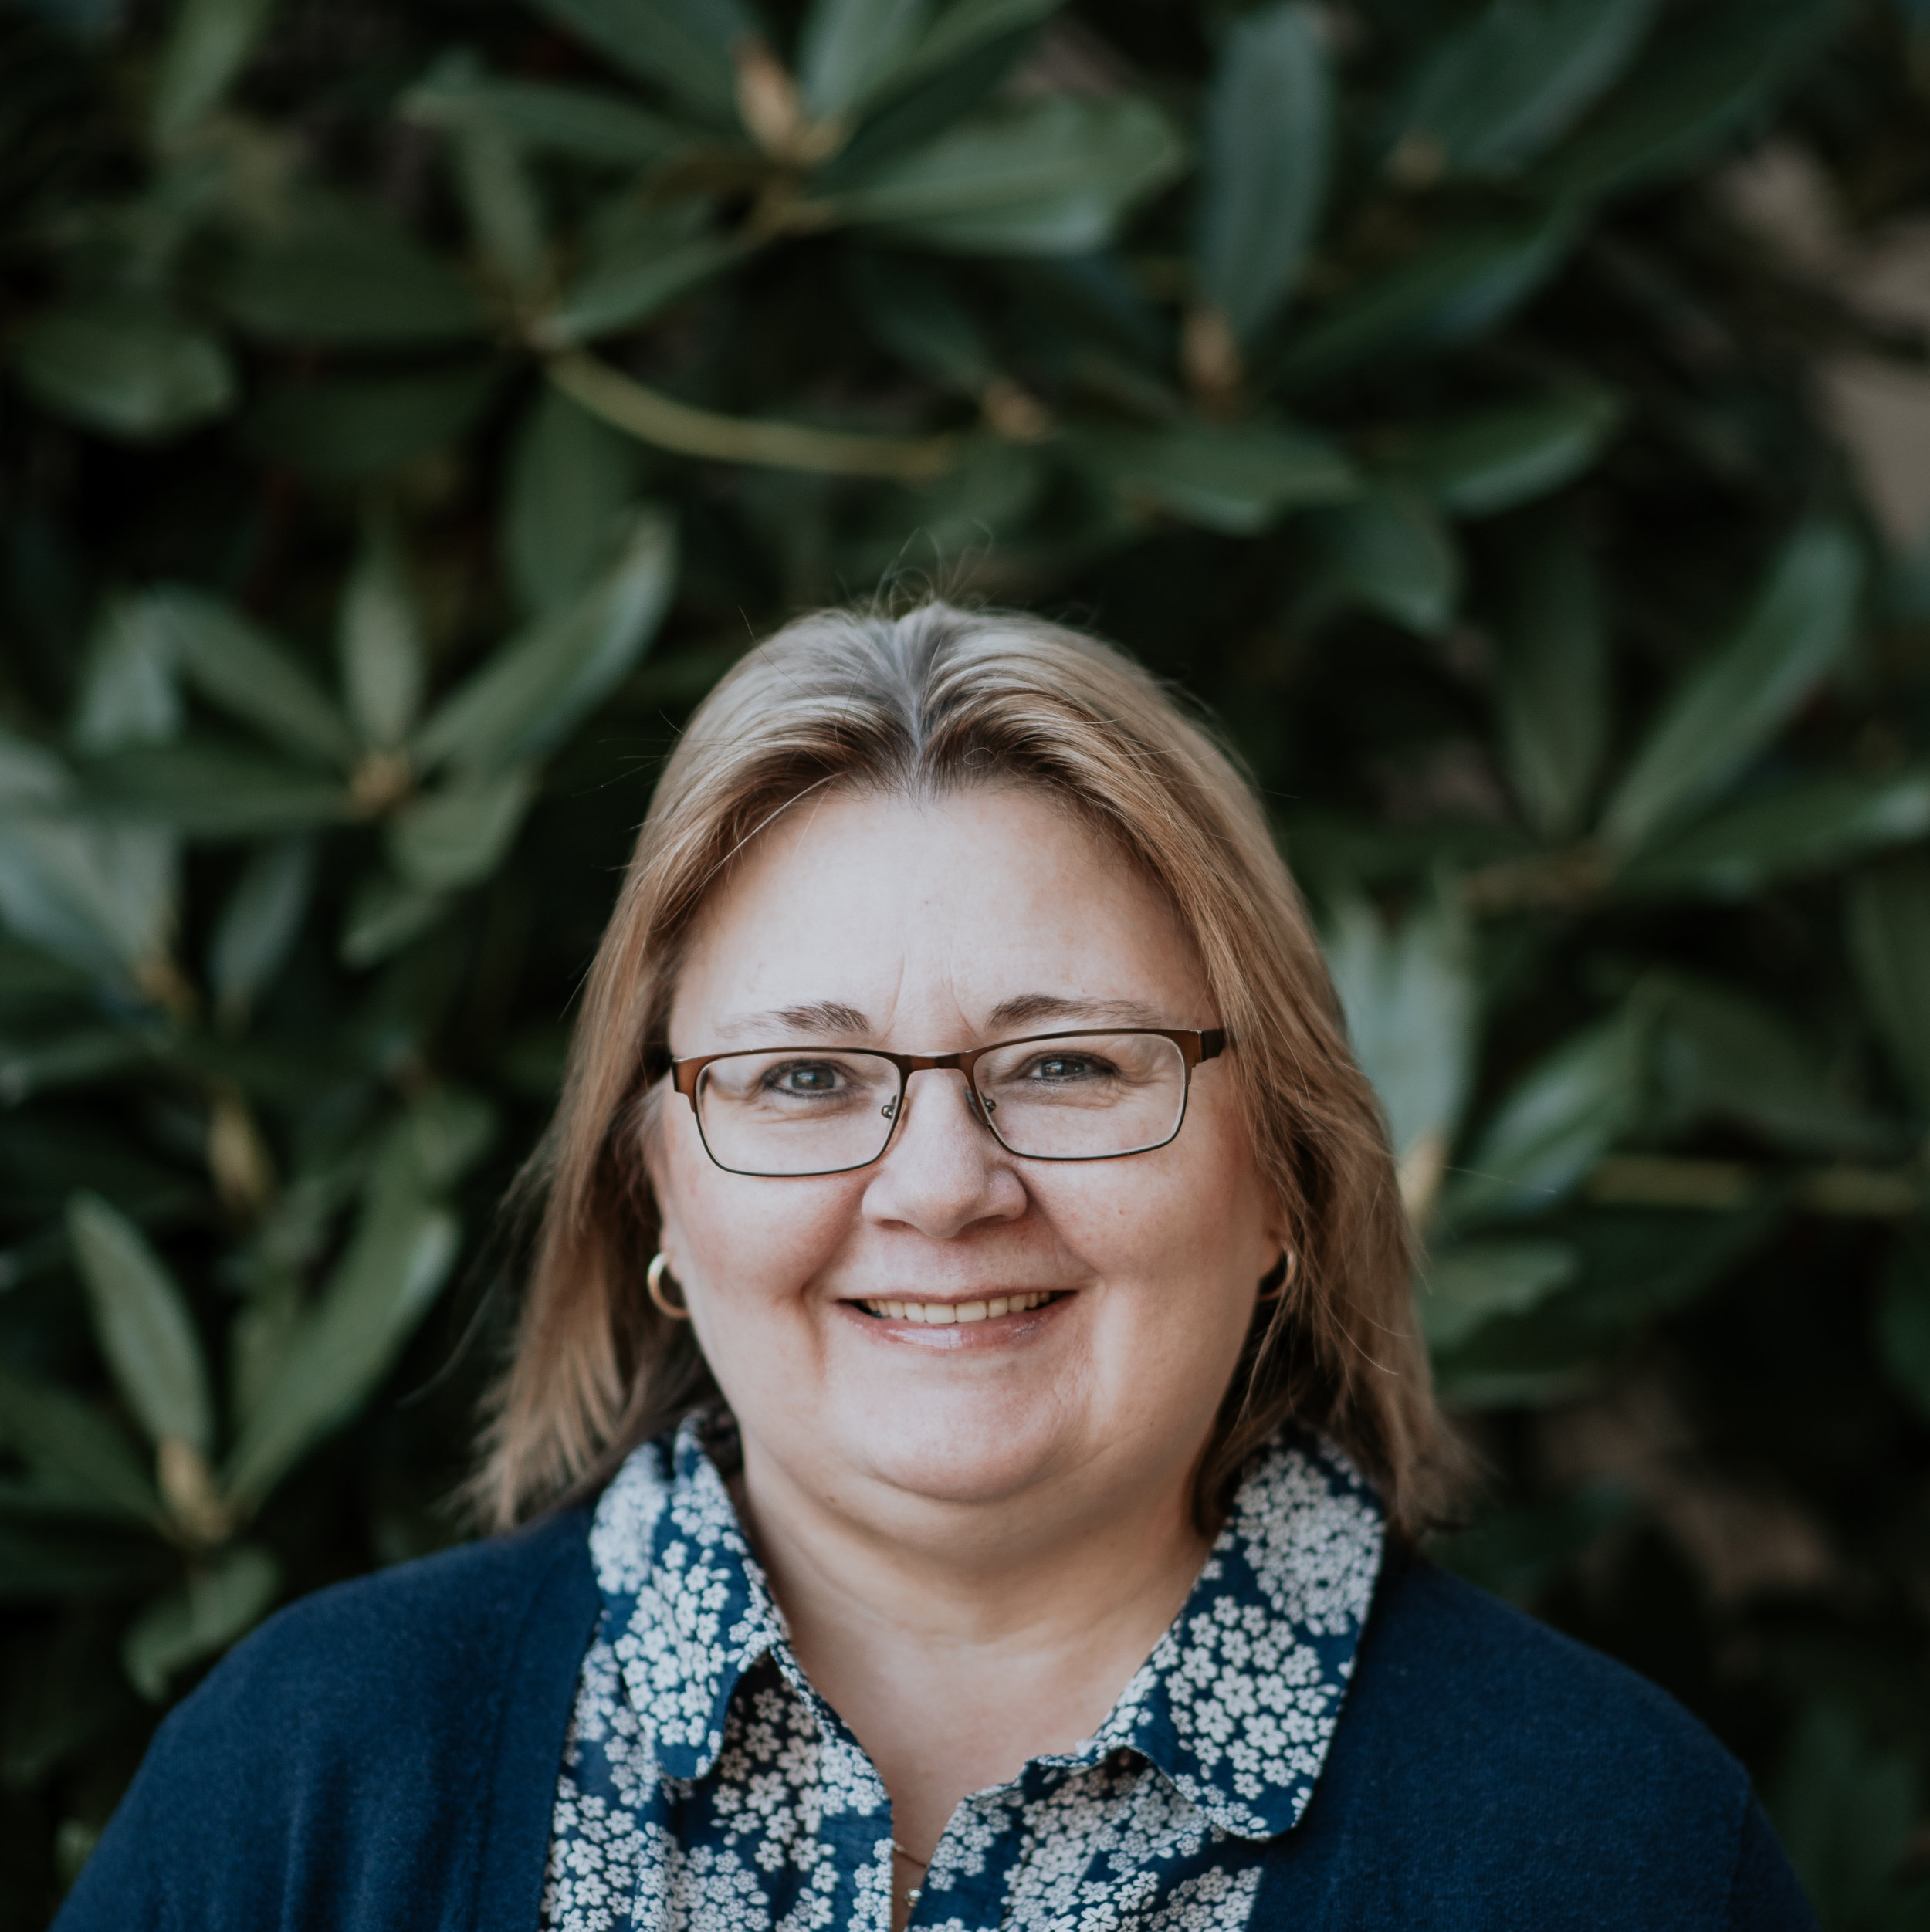 Dr. Melody Deeley  Registrar Counselling Foundations Director Associate Professor Telephone:  (604) 851-7225  Campus Local: 7225 Email:  registrar@summitpacific.ca  Email:  counselling@summitpacific.ca  Email:  mdeeley@summitpacific.ca